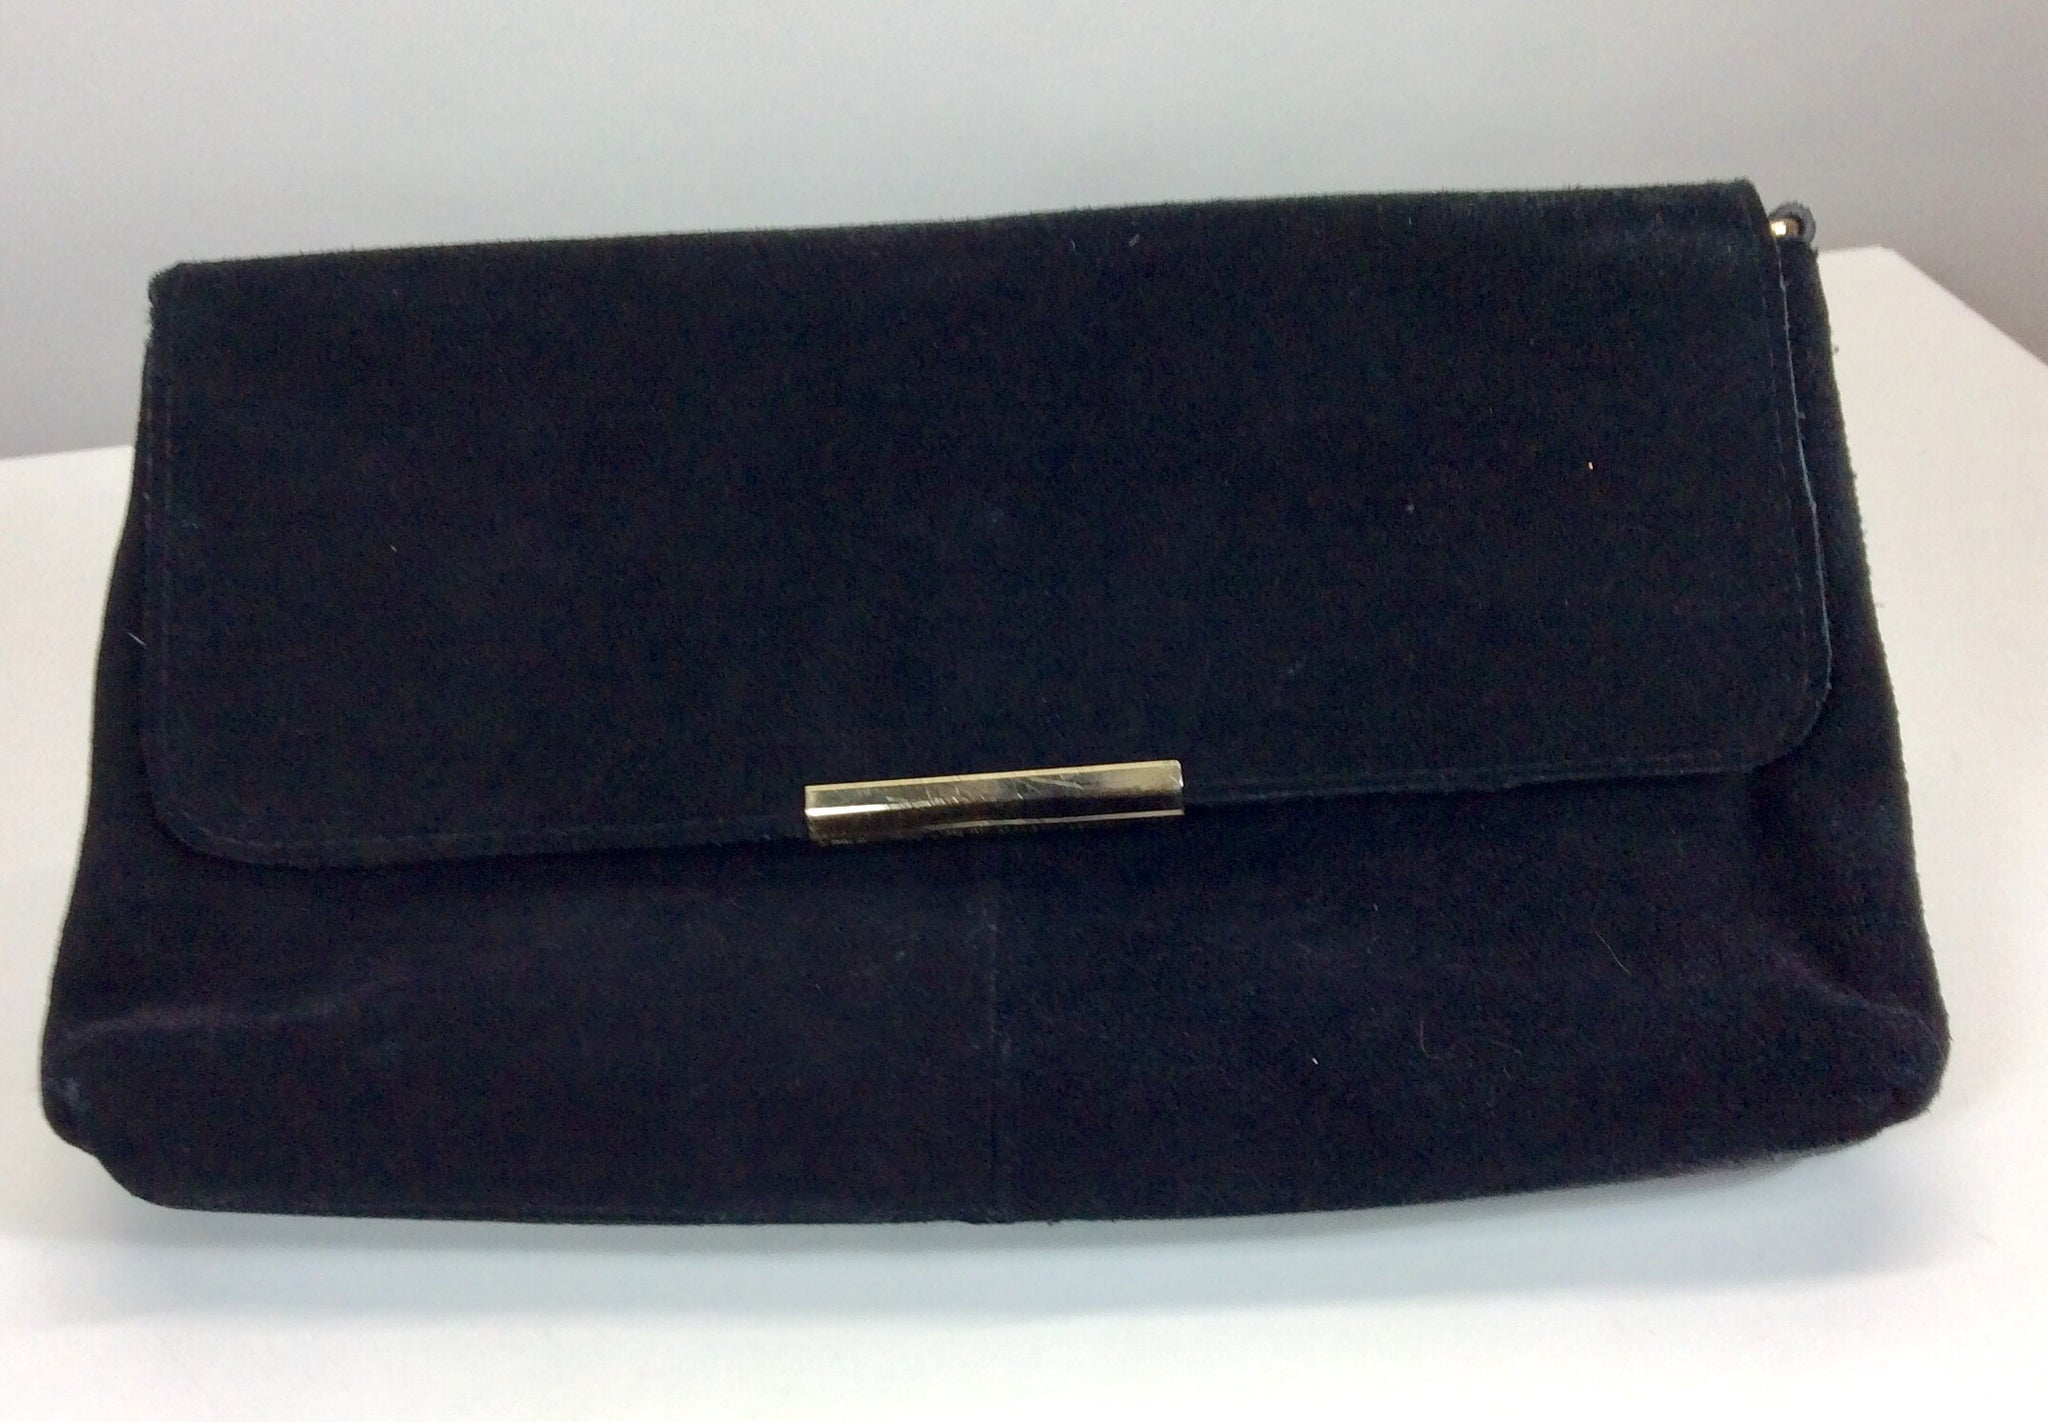 Black suede clutch with gold clasp